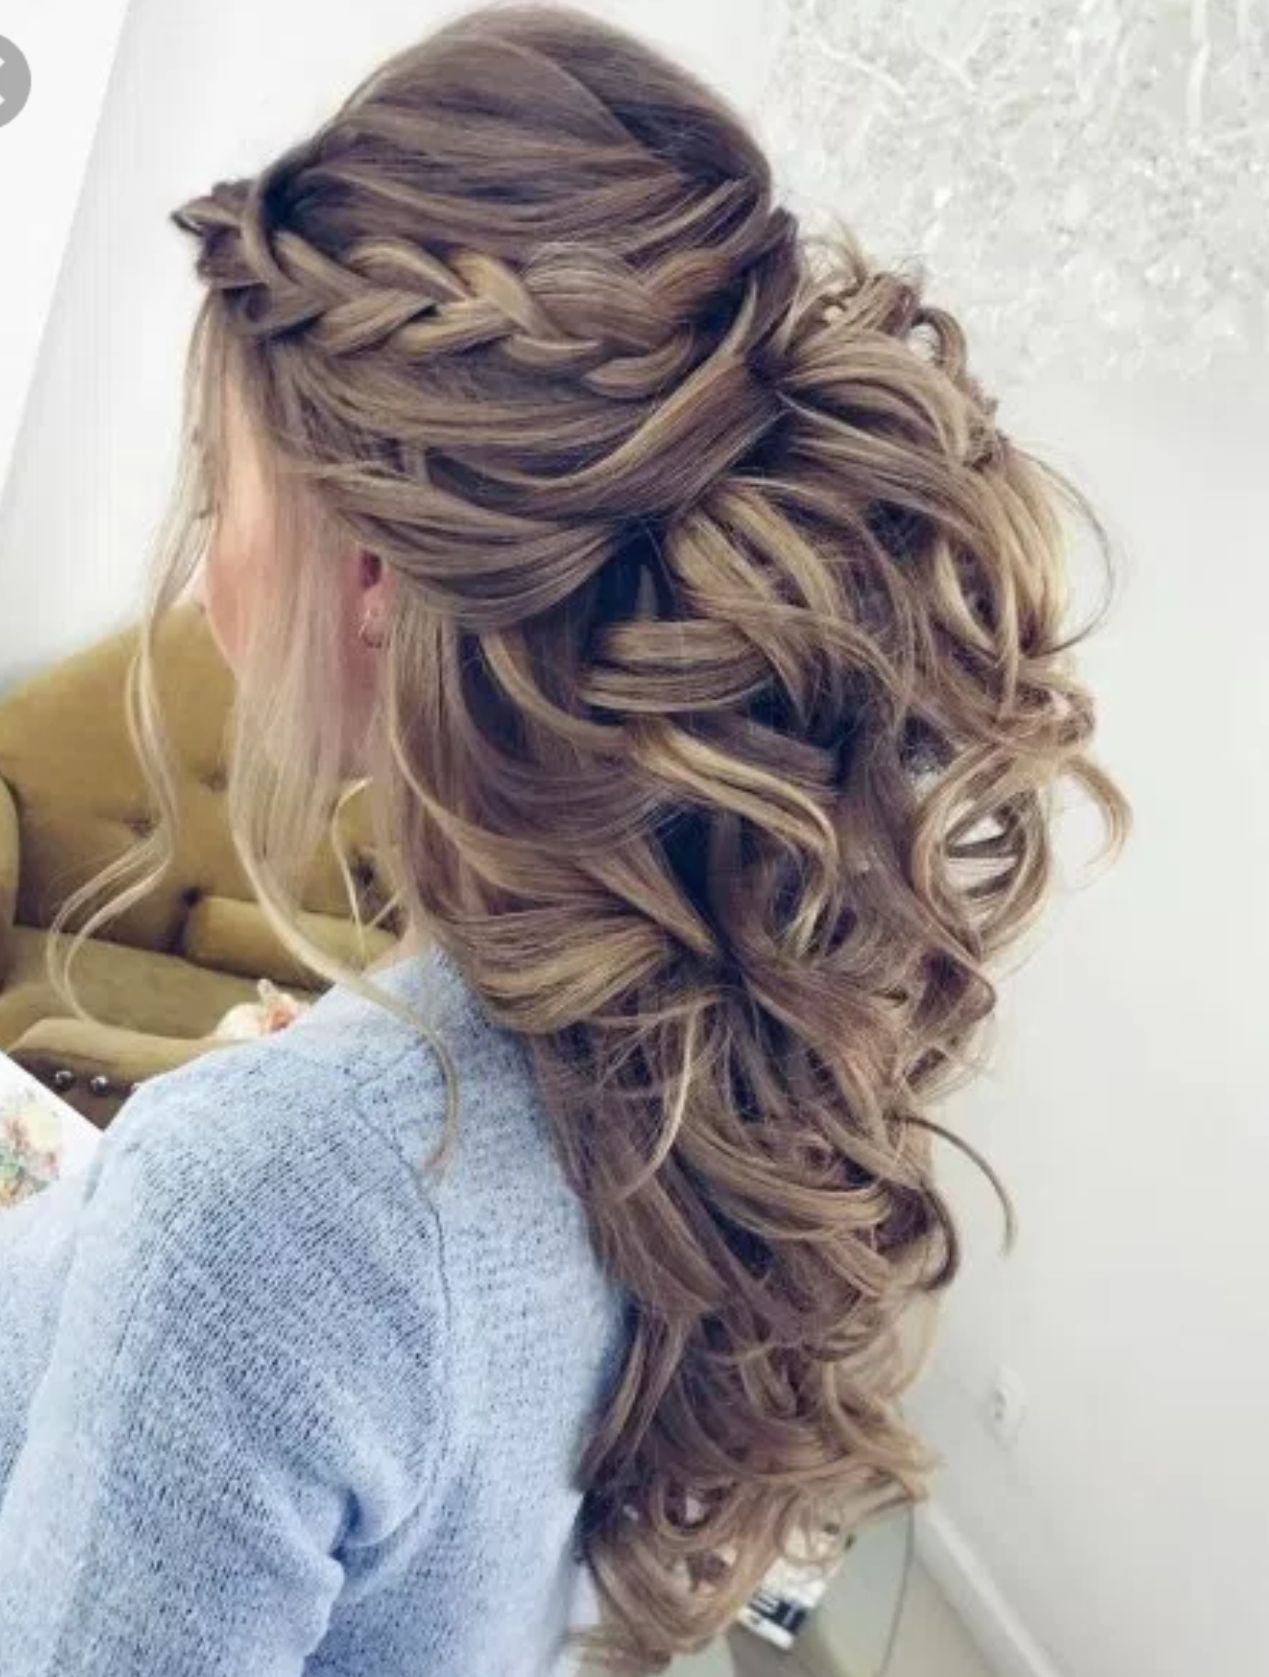 Show Me Short Haircuts Short Hair Hairstyles For Little Girls Simple Hairdos For Girls 20190212 Kids Hairstyles Girl Hairstyles Little Girl Hairstyles